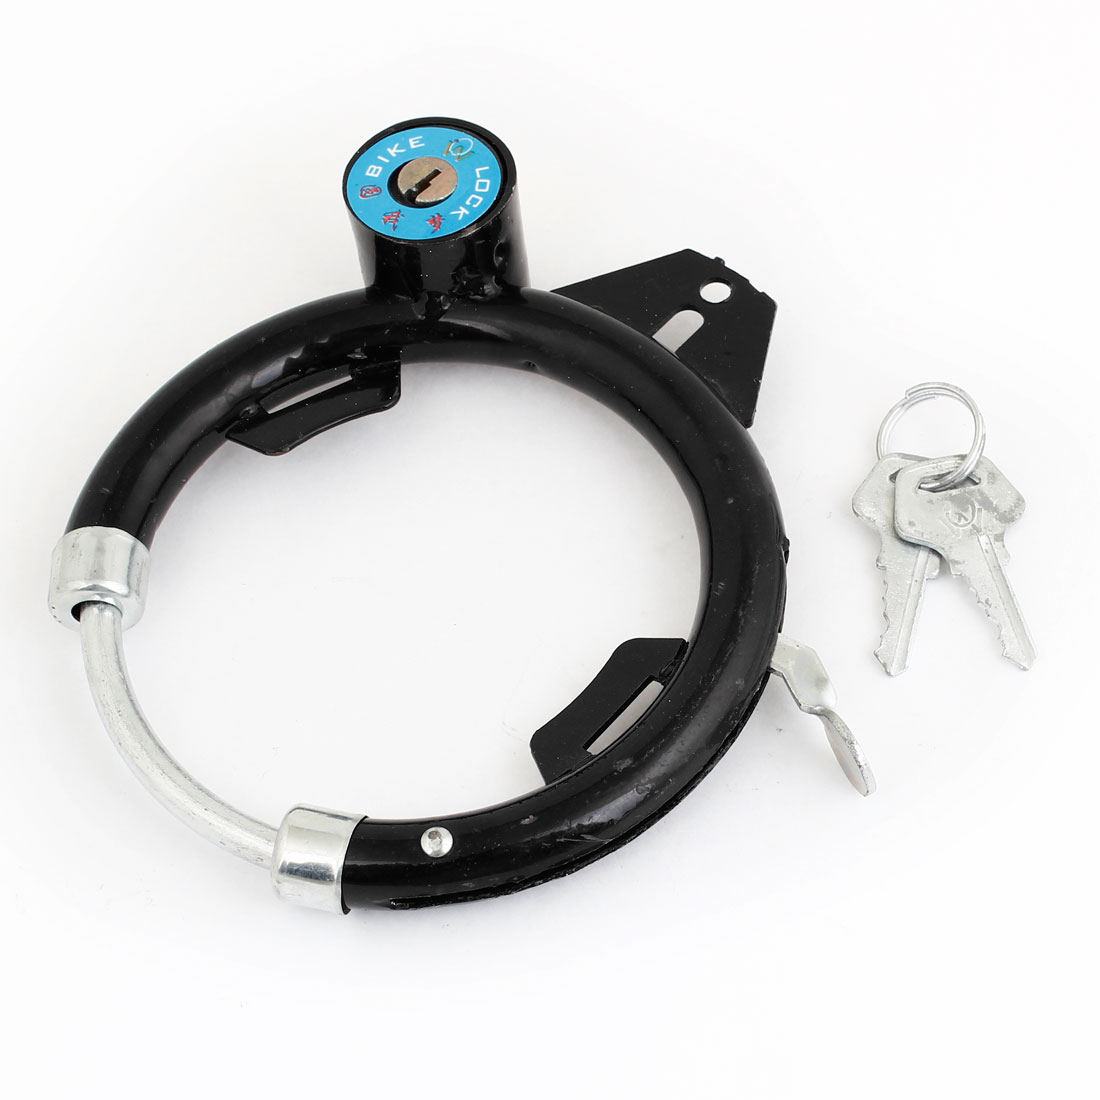 Metal Cable O Shaped Security Lock Black for Bike Bicycle Motorcycle